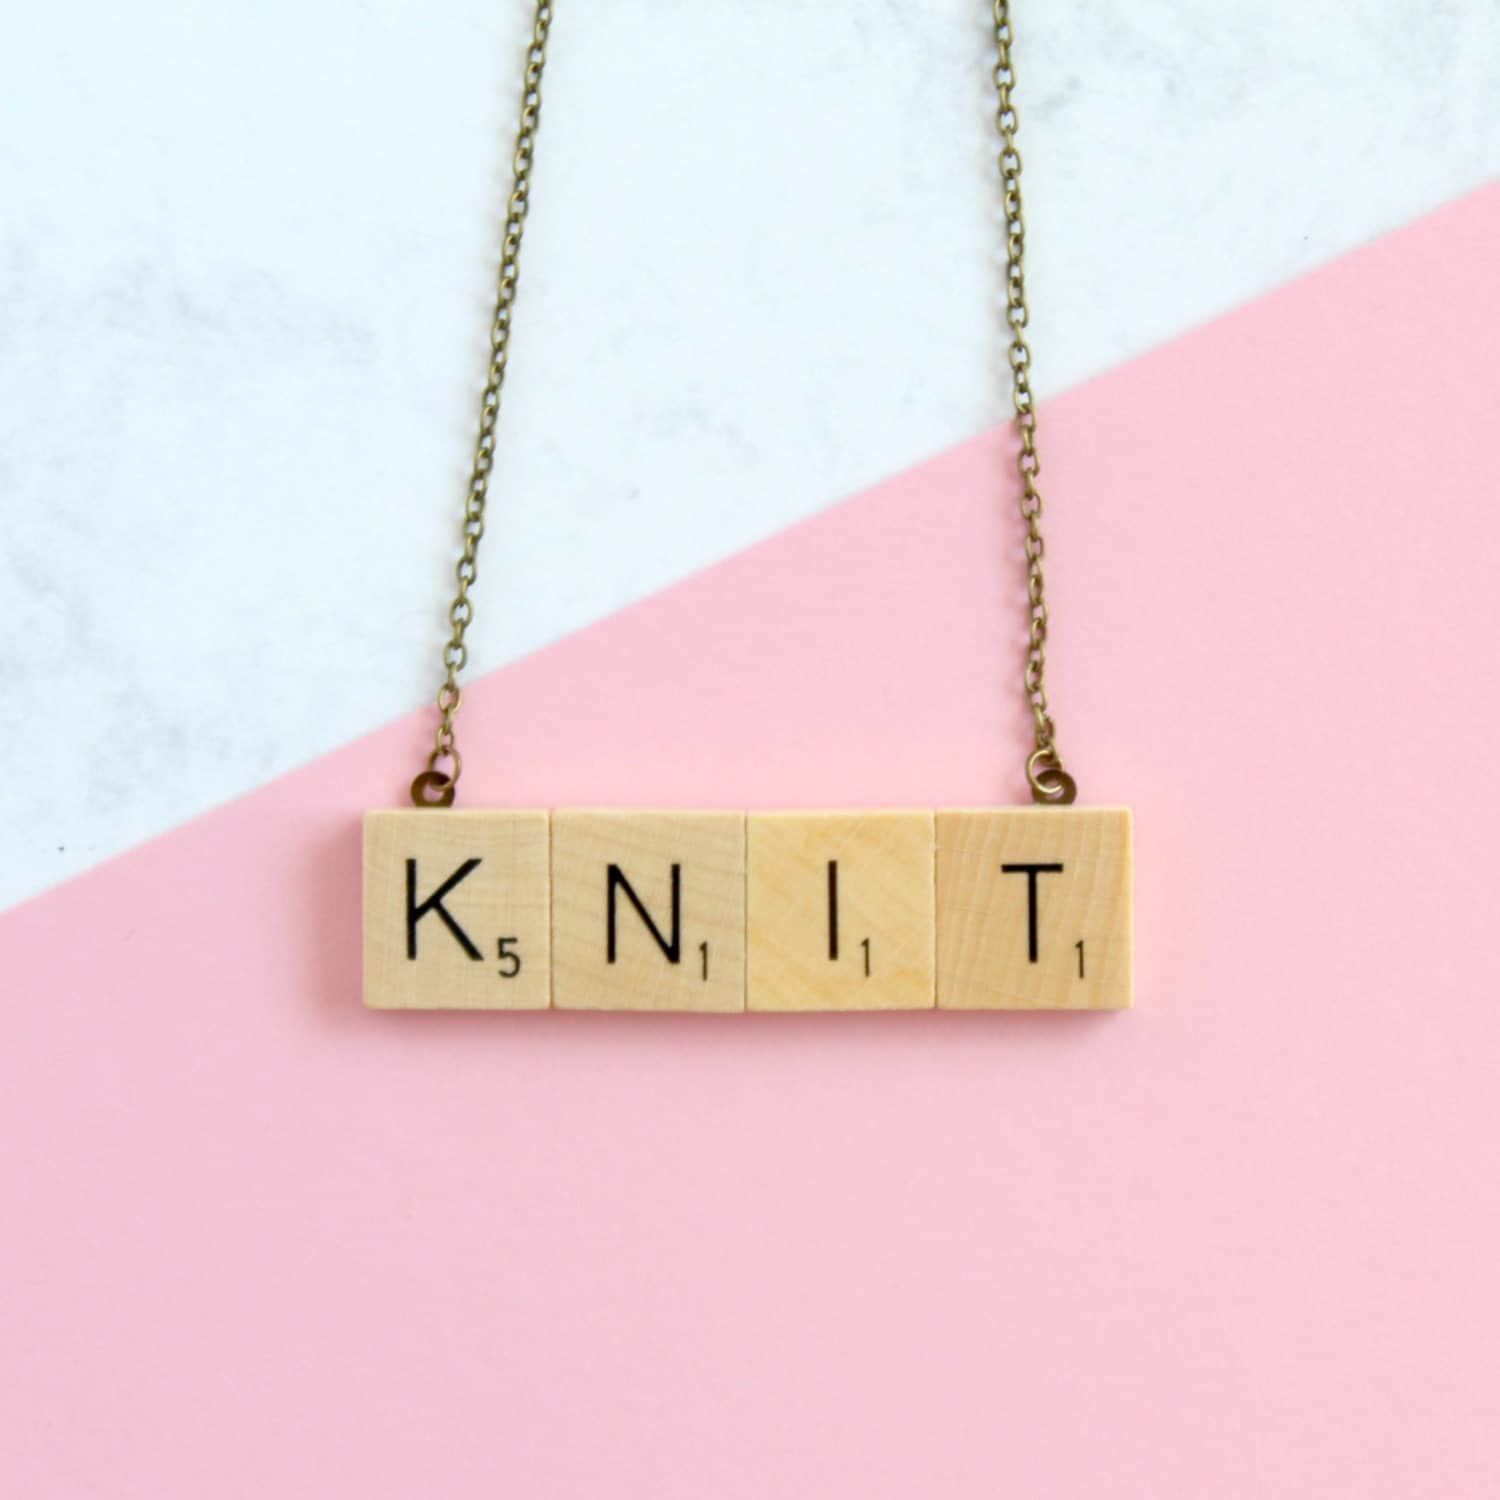 KNIT Phrase Necklace  Wooden Scrabble Inspired Knit Necklace Scrabble Necklace Knit Word Necklace Scrabble Christmas Gift